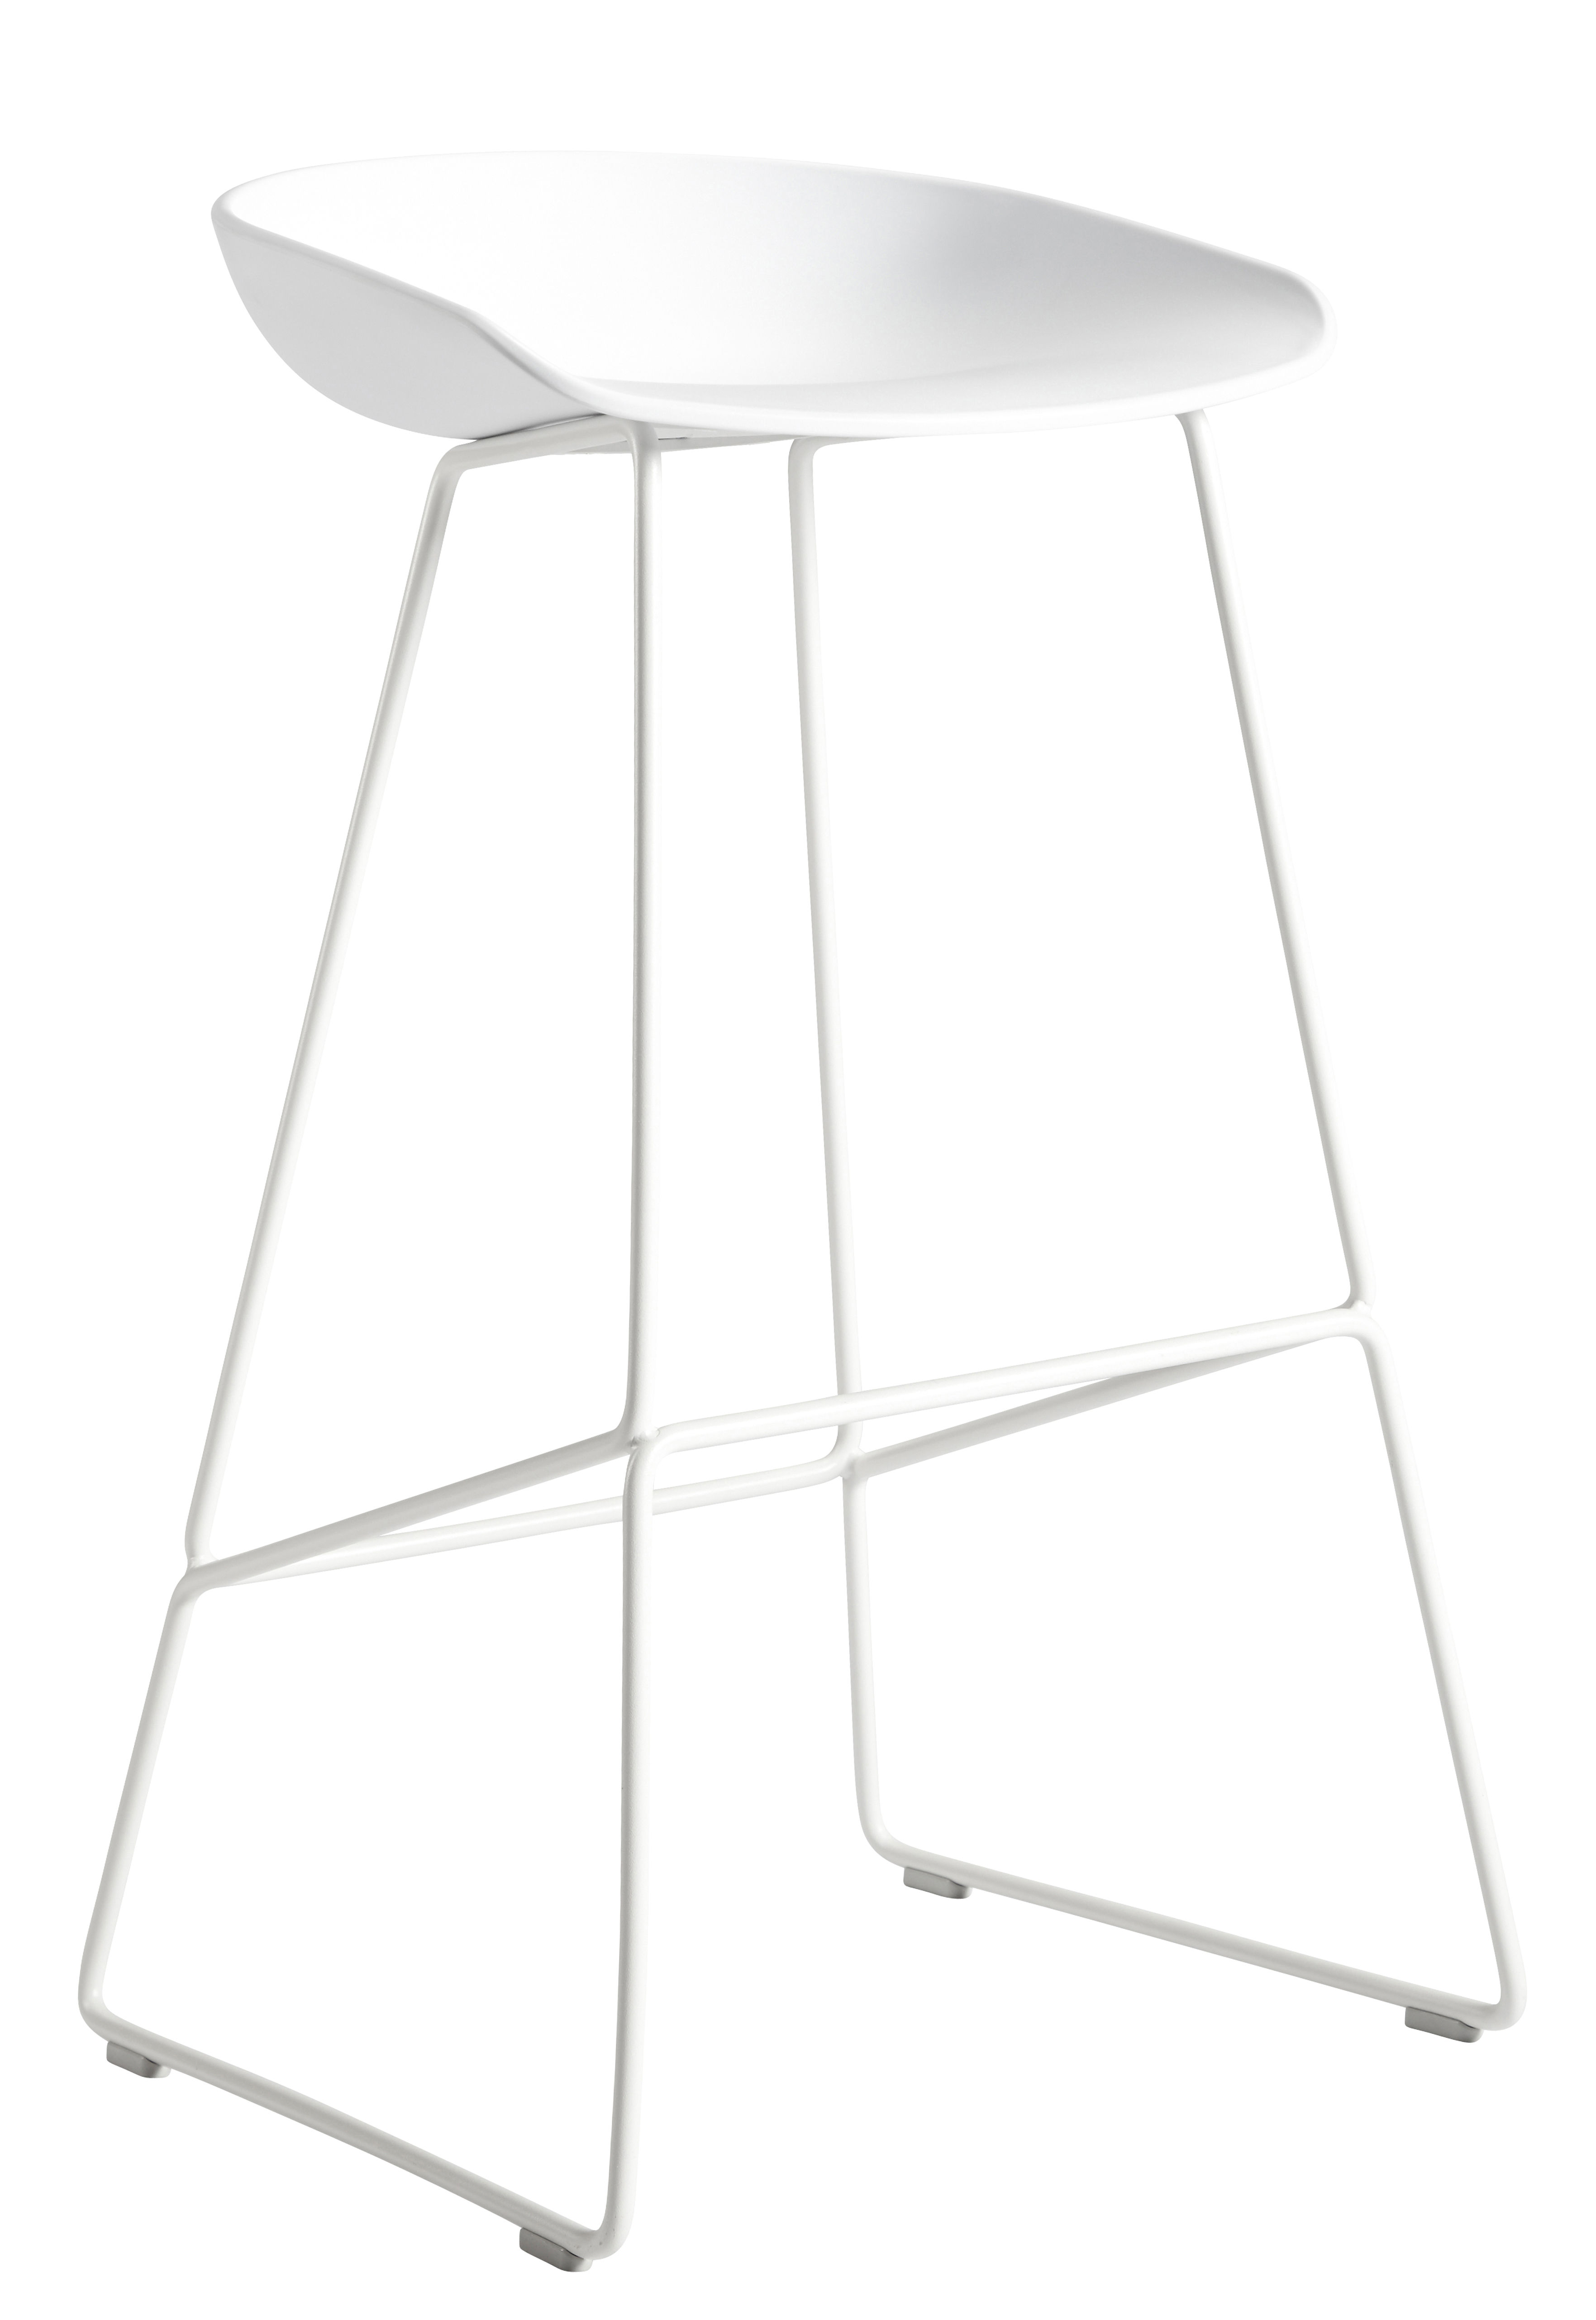 About A Stool Aas 38 H 65 Cm Kufengestell Aus Stahl